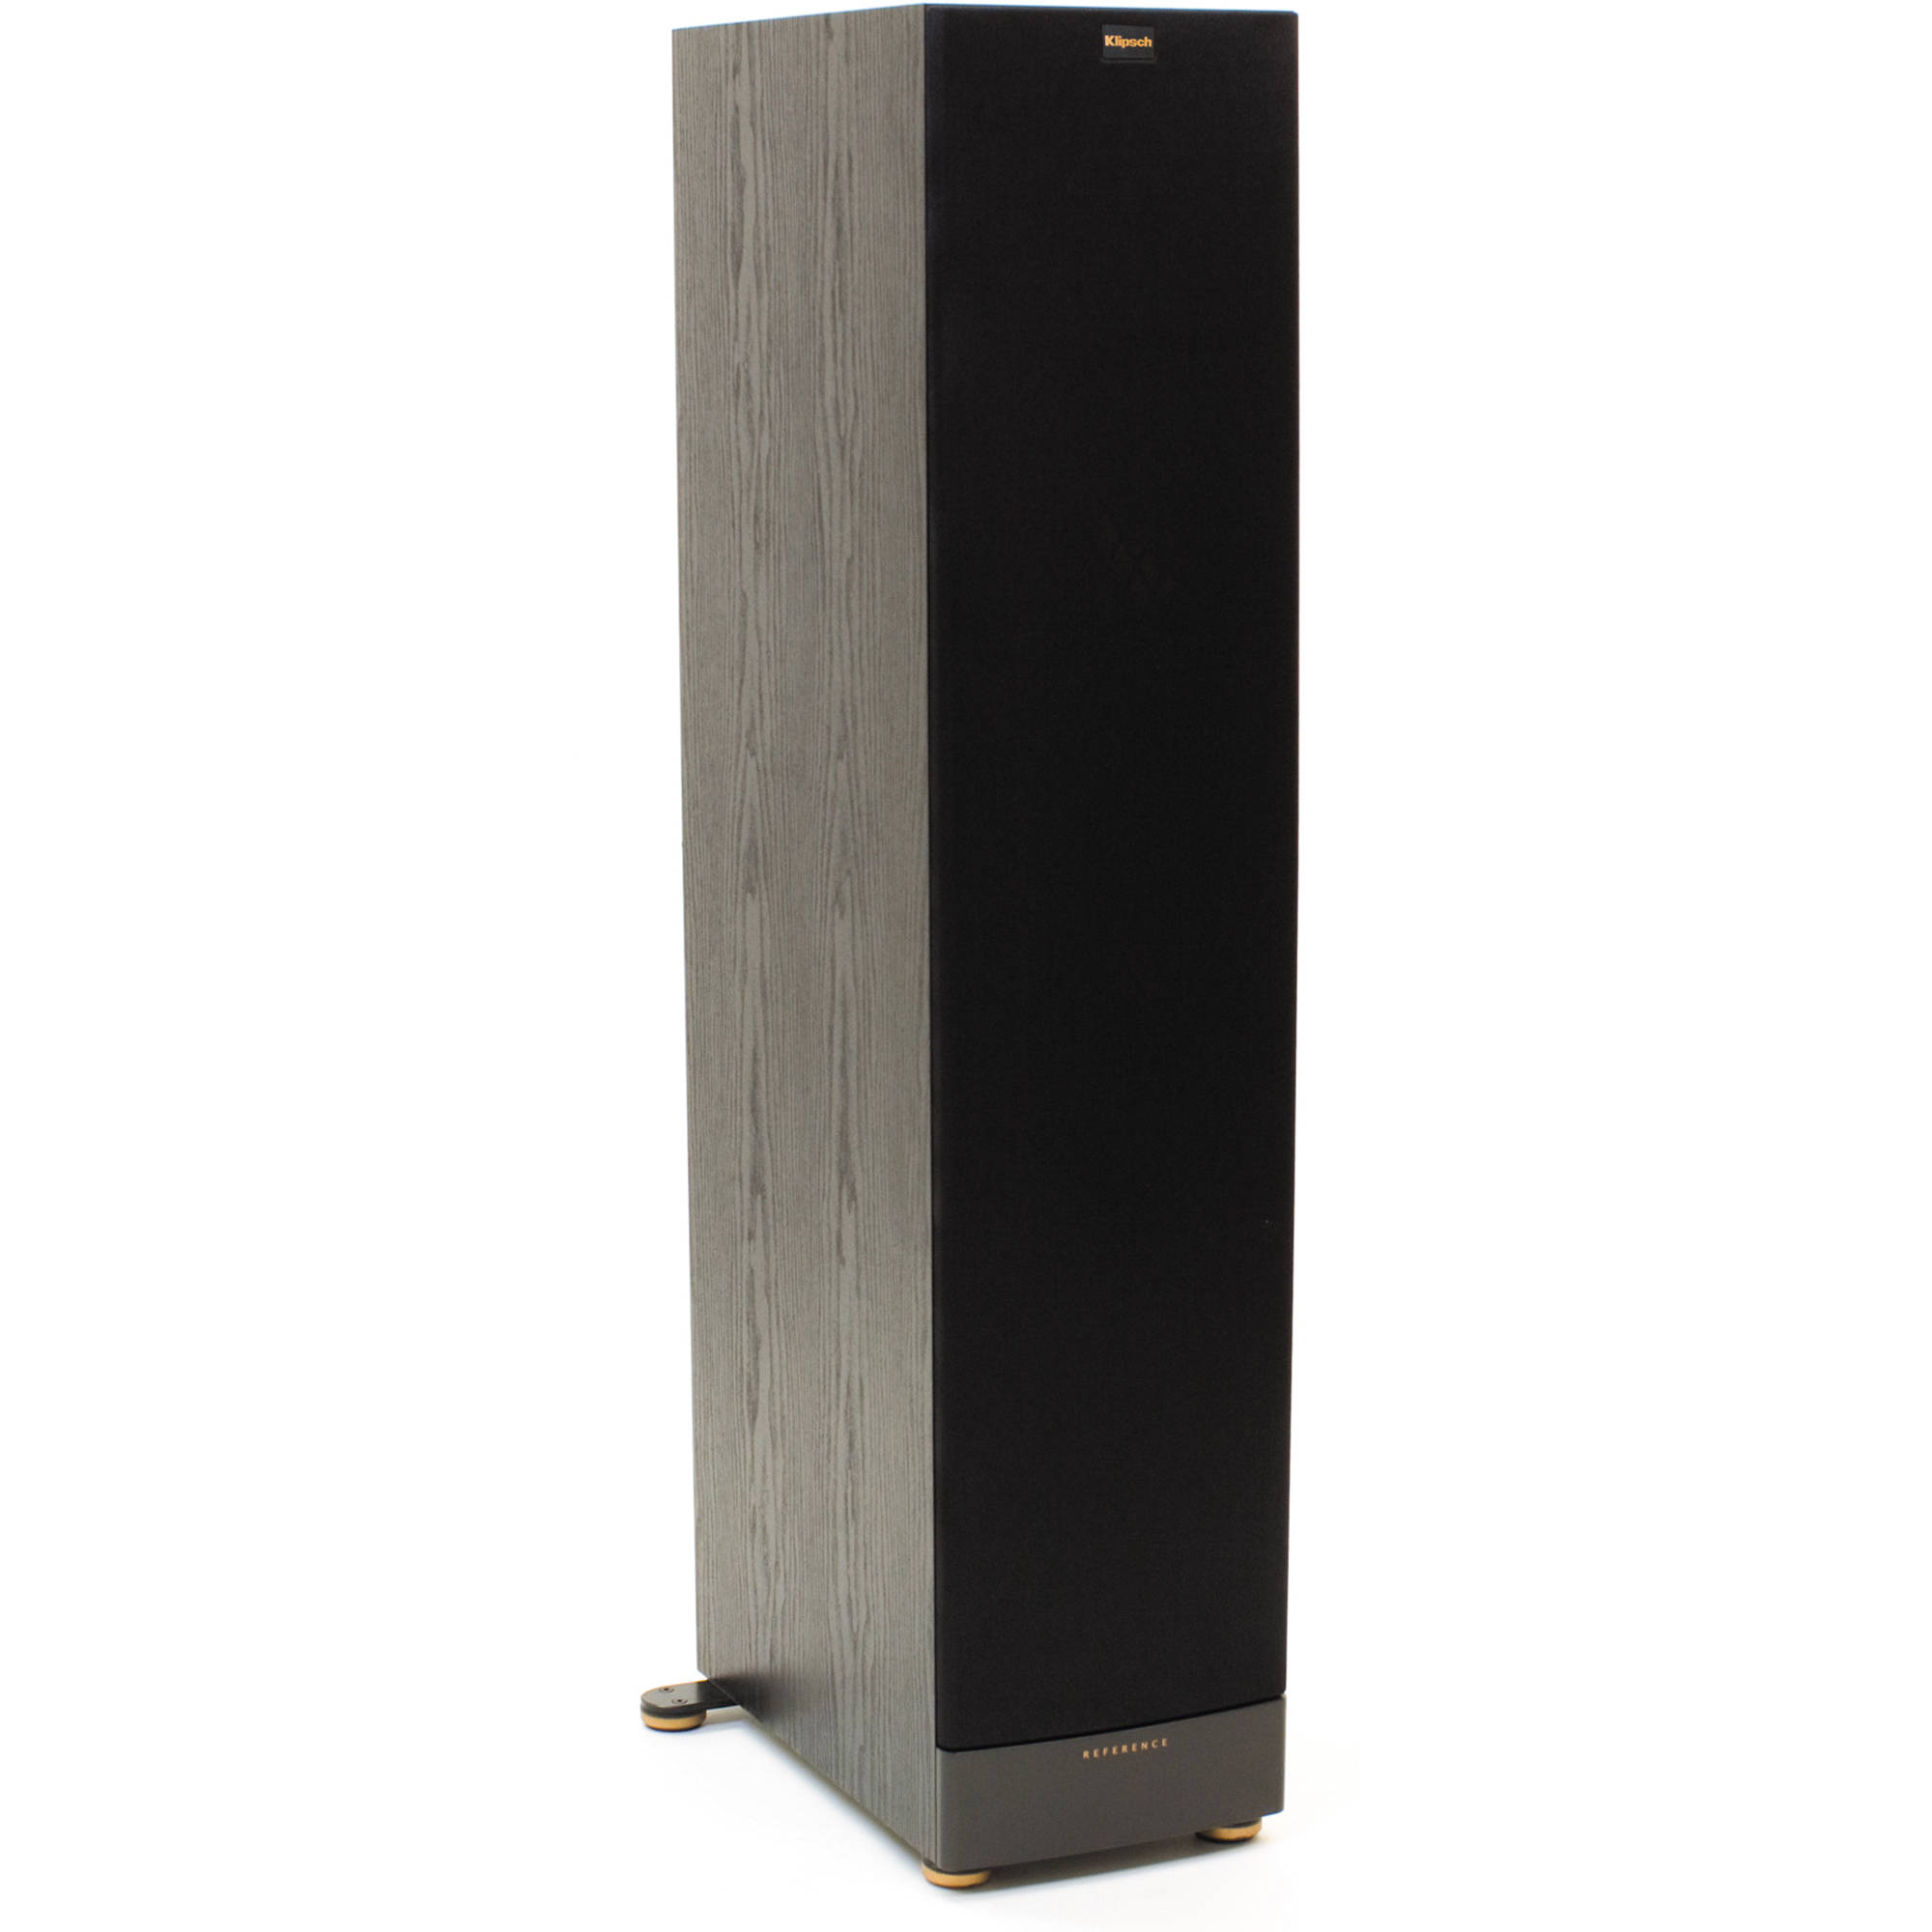 klipsch rf 82 ii floorstanding speaker black ash 1011843 b h. Black Bedroom Furniture Sets. Home Design Ideas